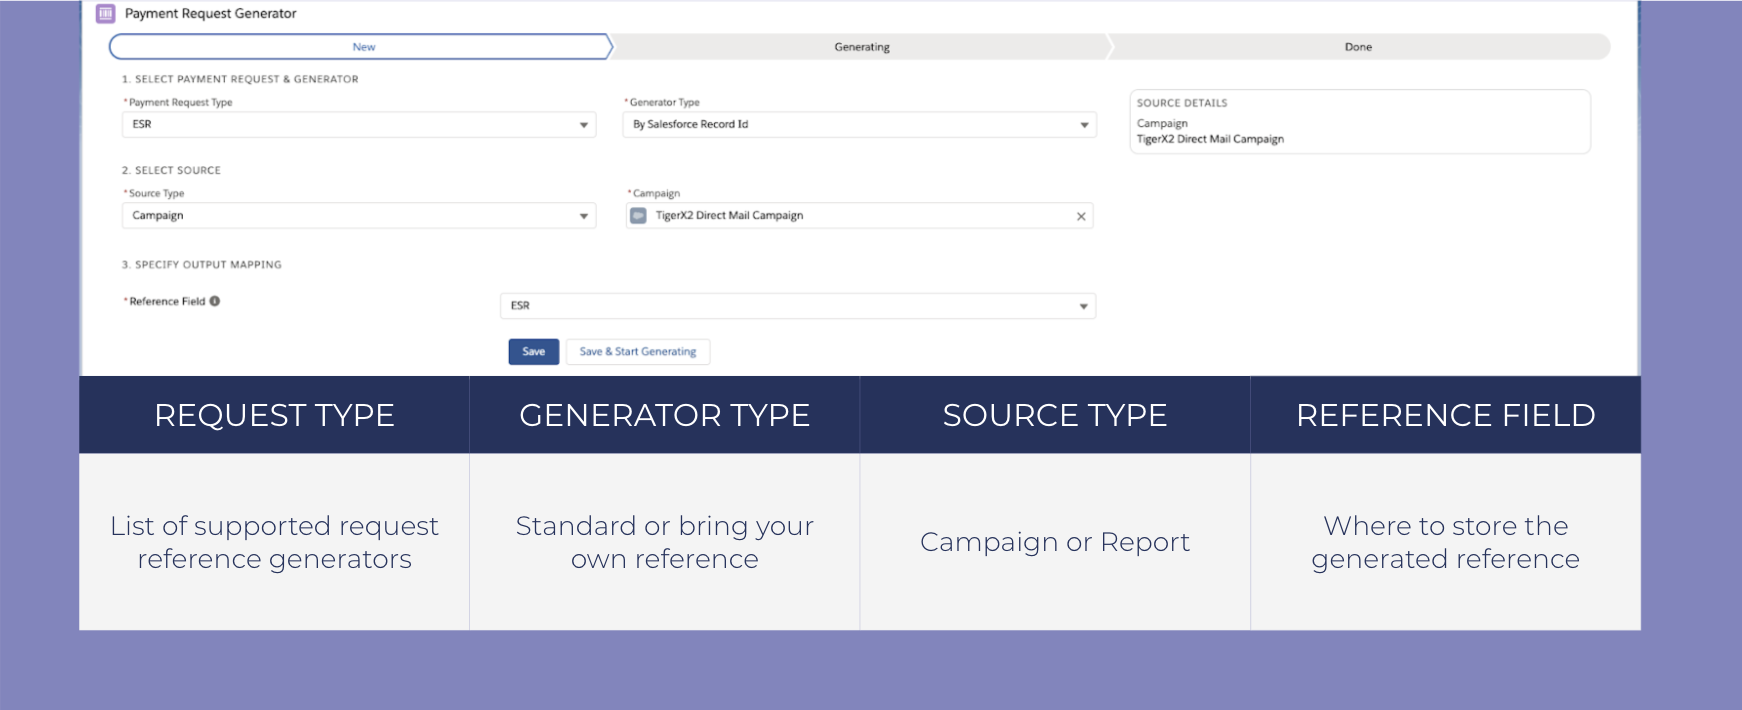 payment request generator findock